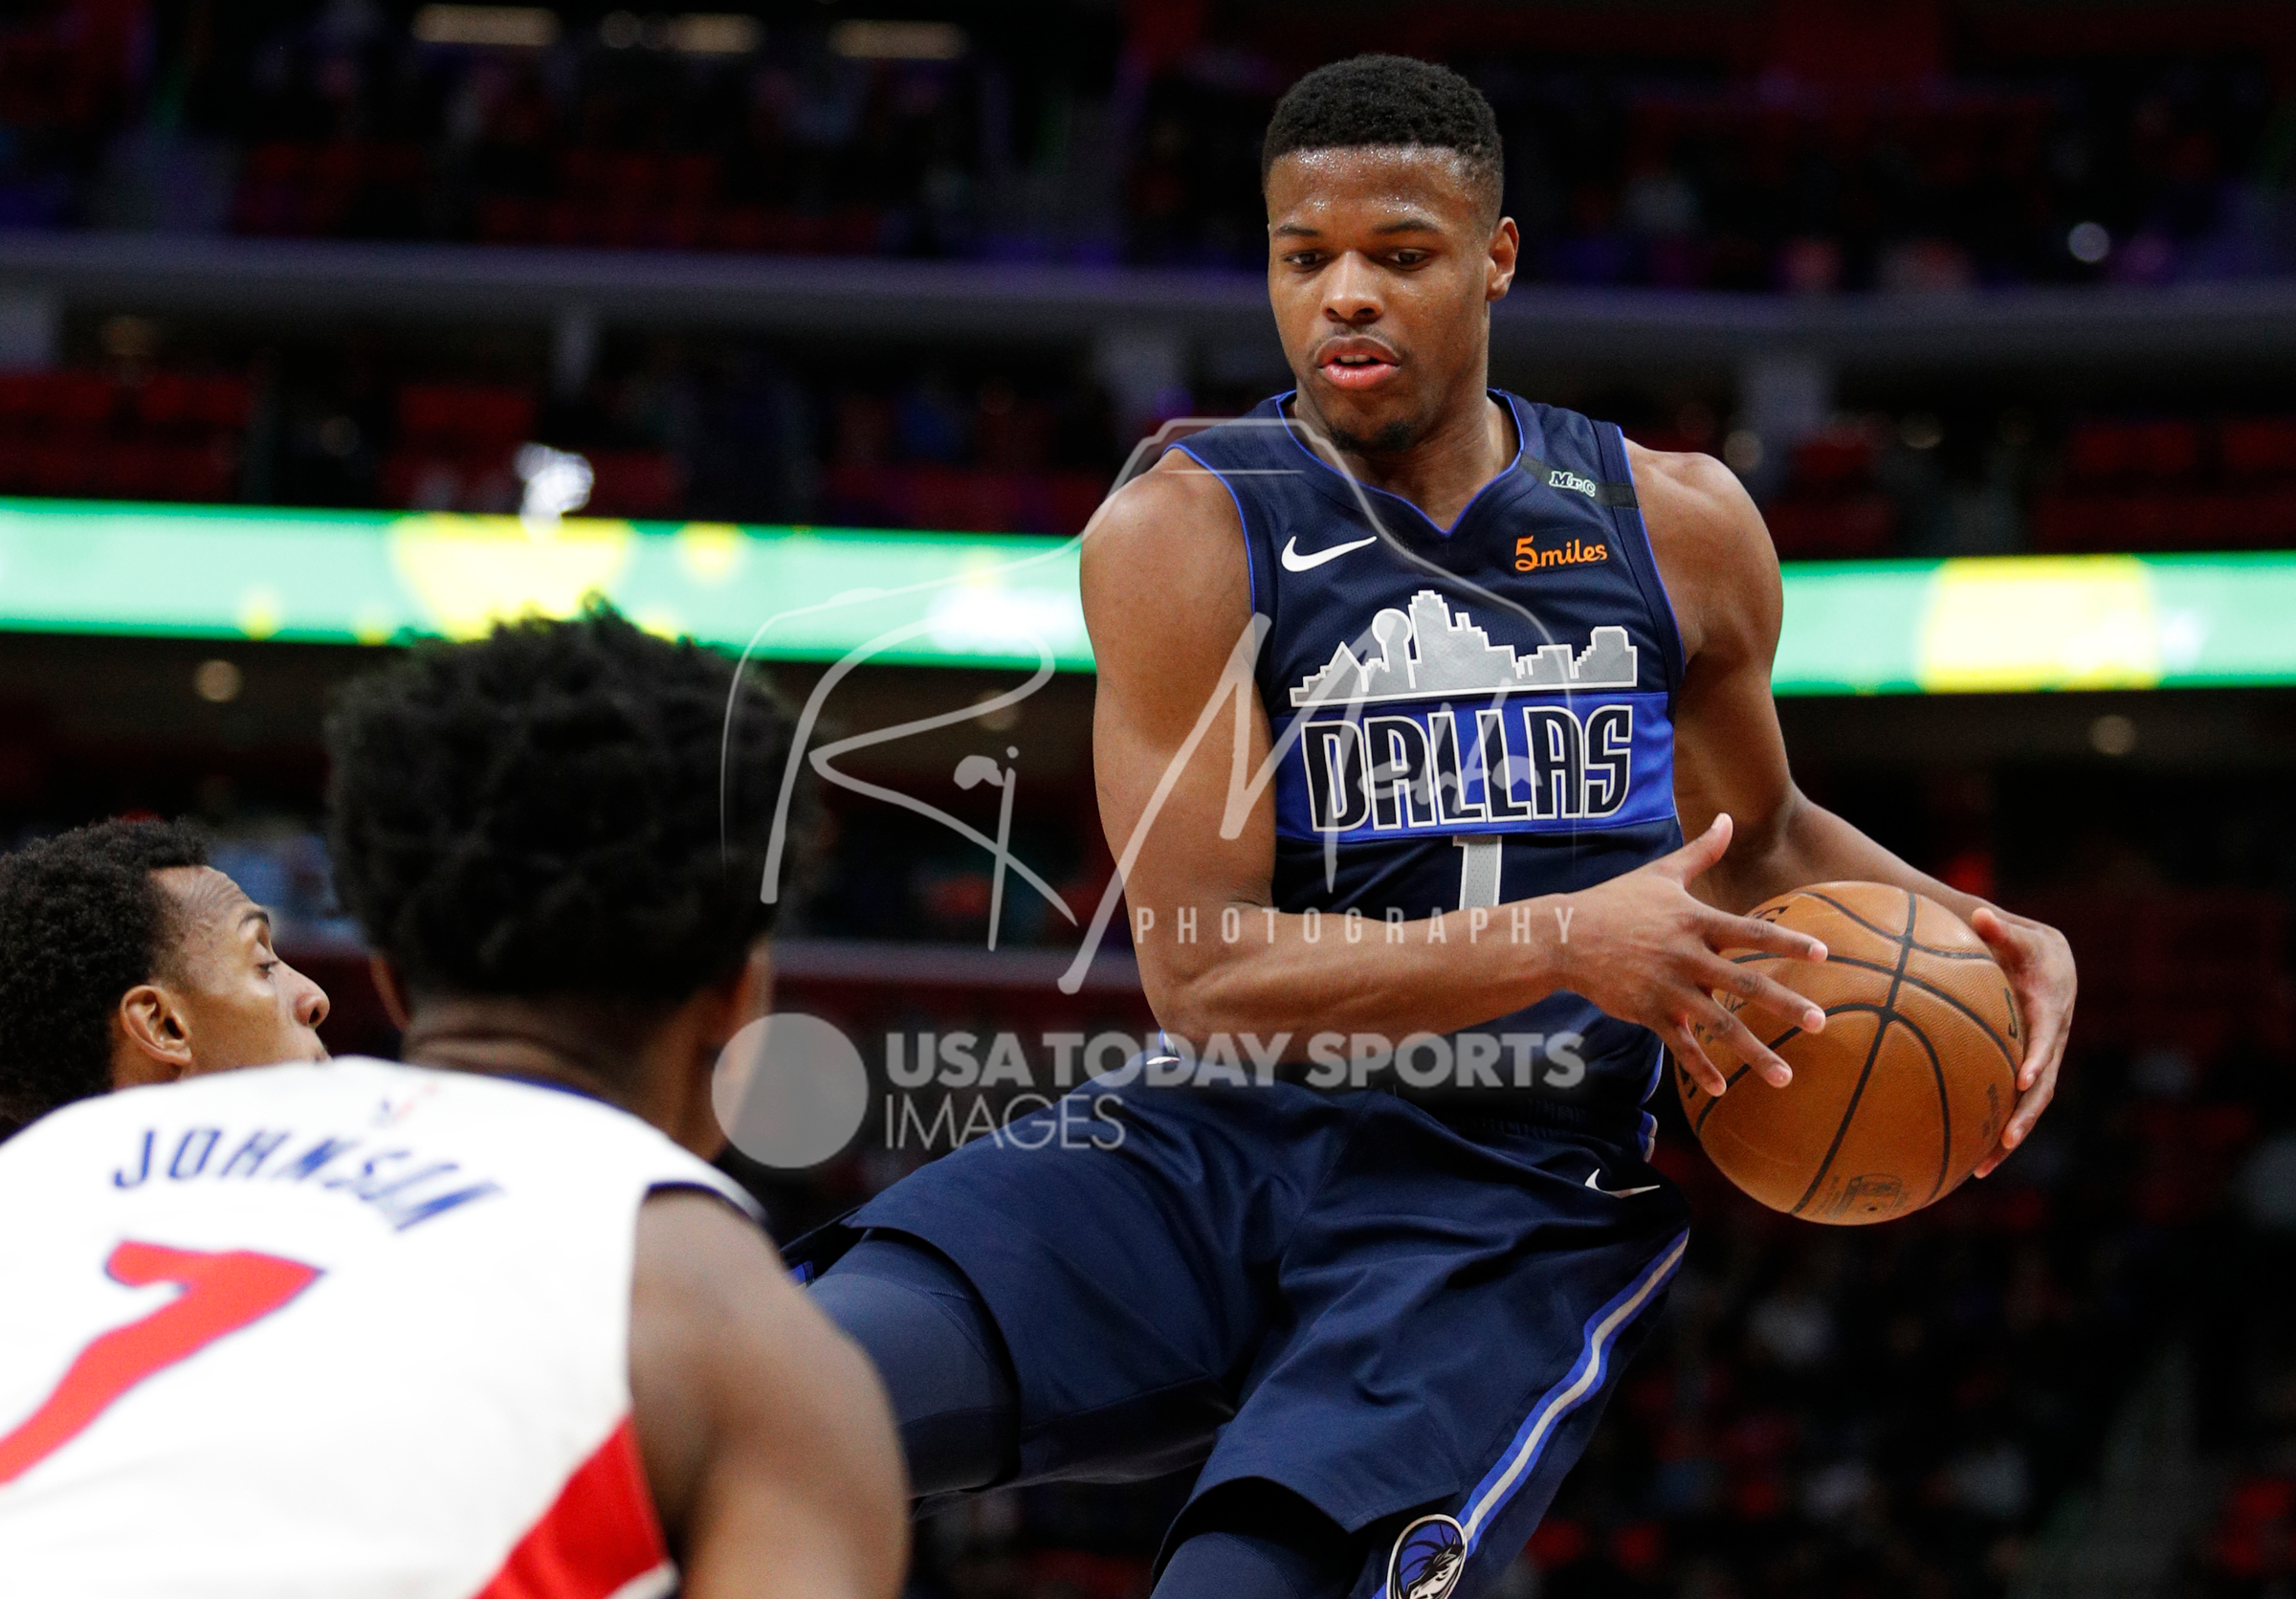 Apr 6, 2018; Detroit, MI, USA; Dallas Mavericks guard Dennis Smith Jr. (1) jumps in the air with the ball during the second quarter against the Detroit Pistons at Little Caesars Arena. Mandatory Credit: Raj Mehta-USA TODAY Sports